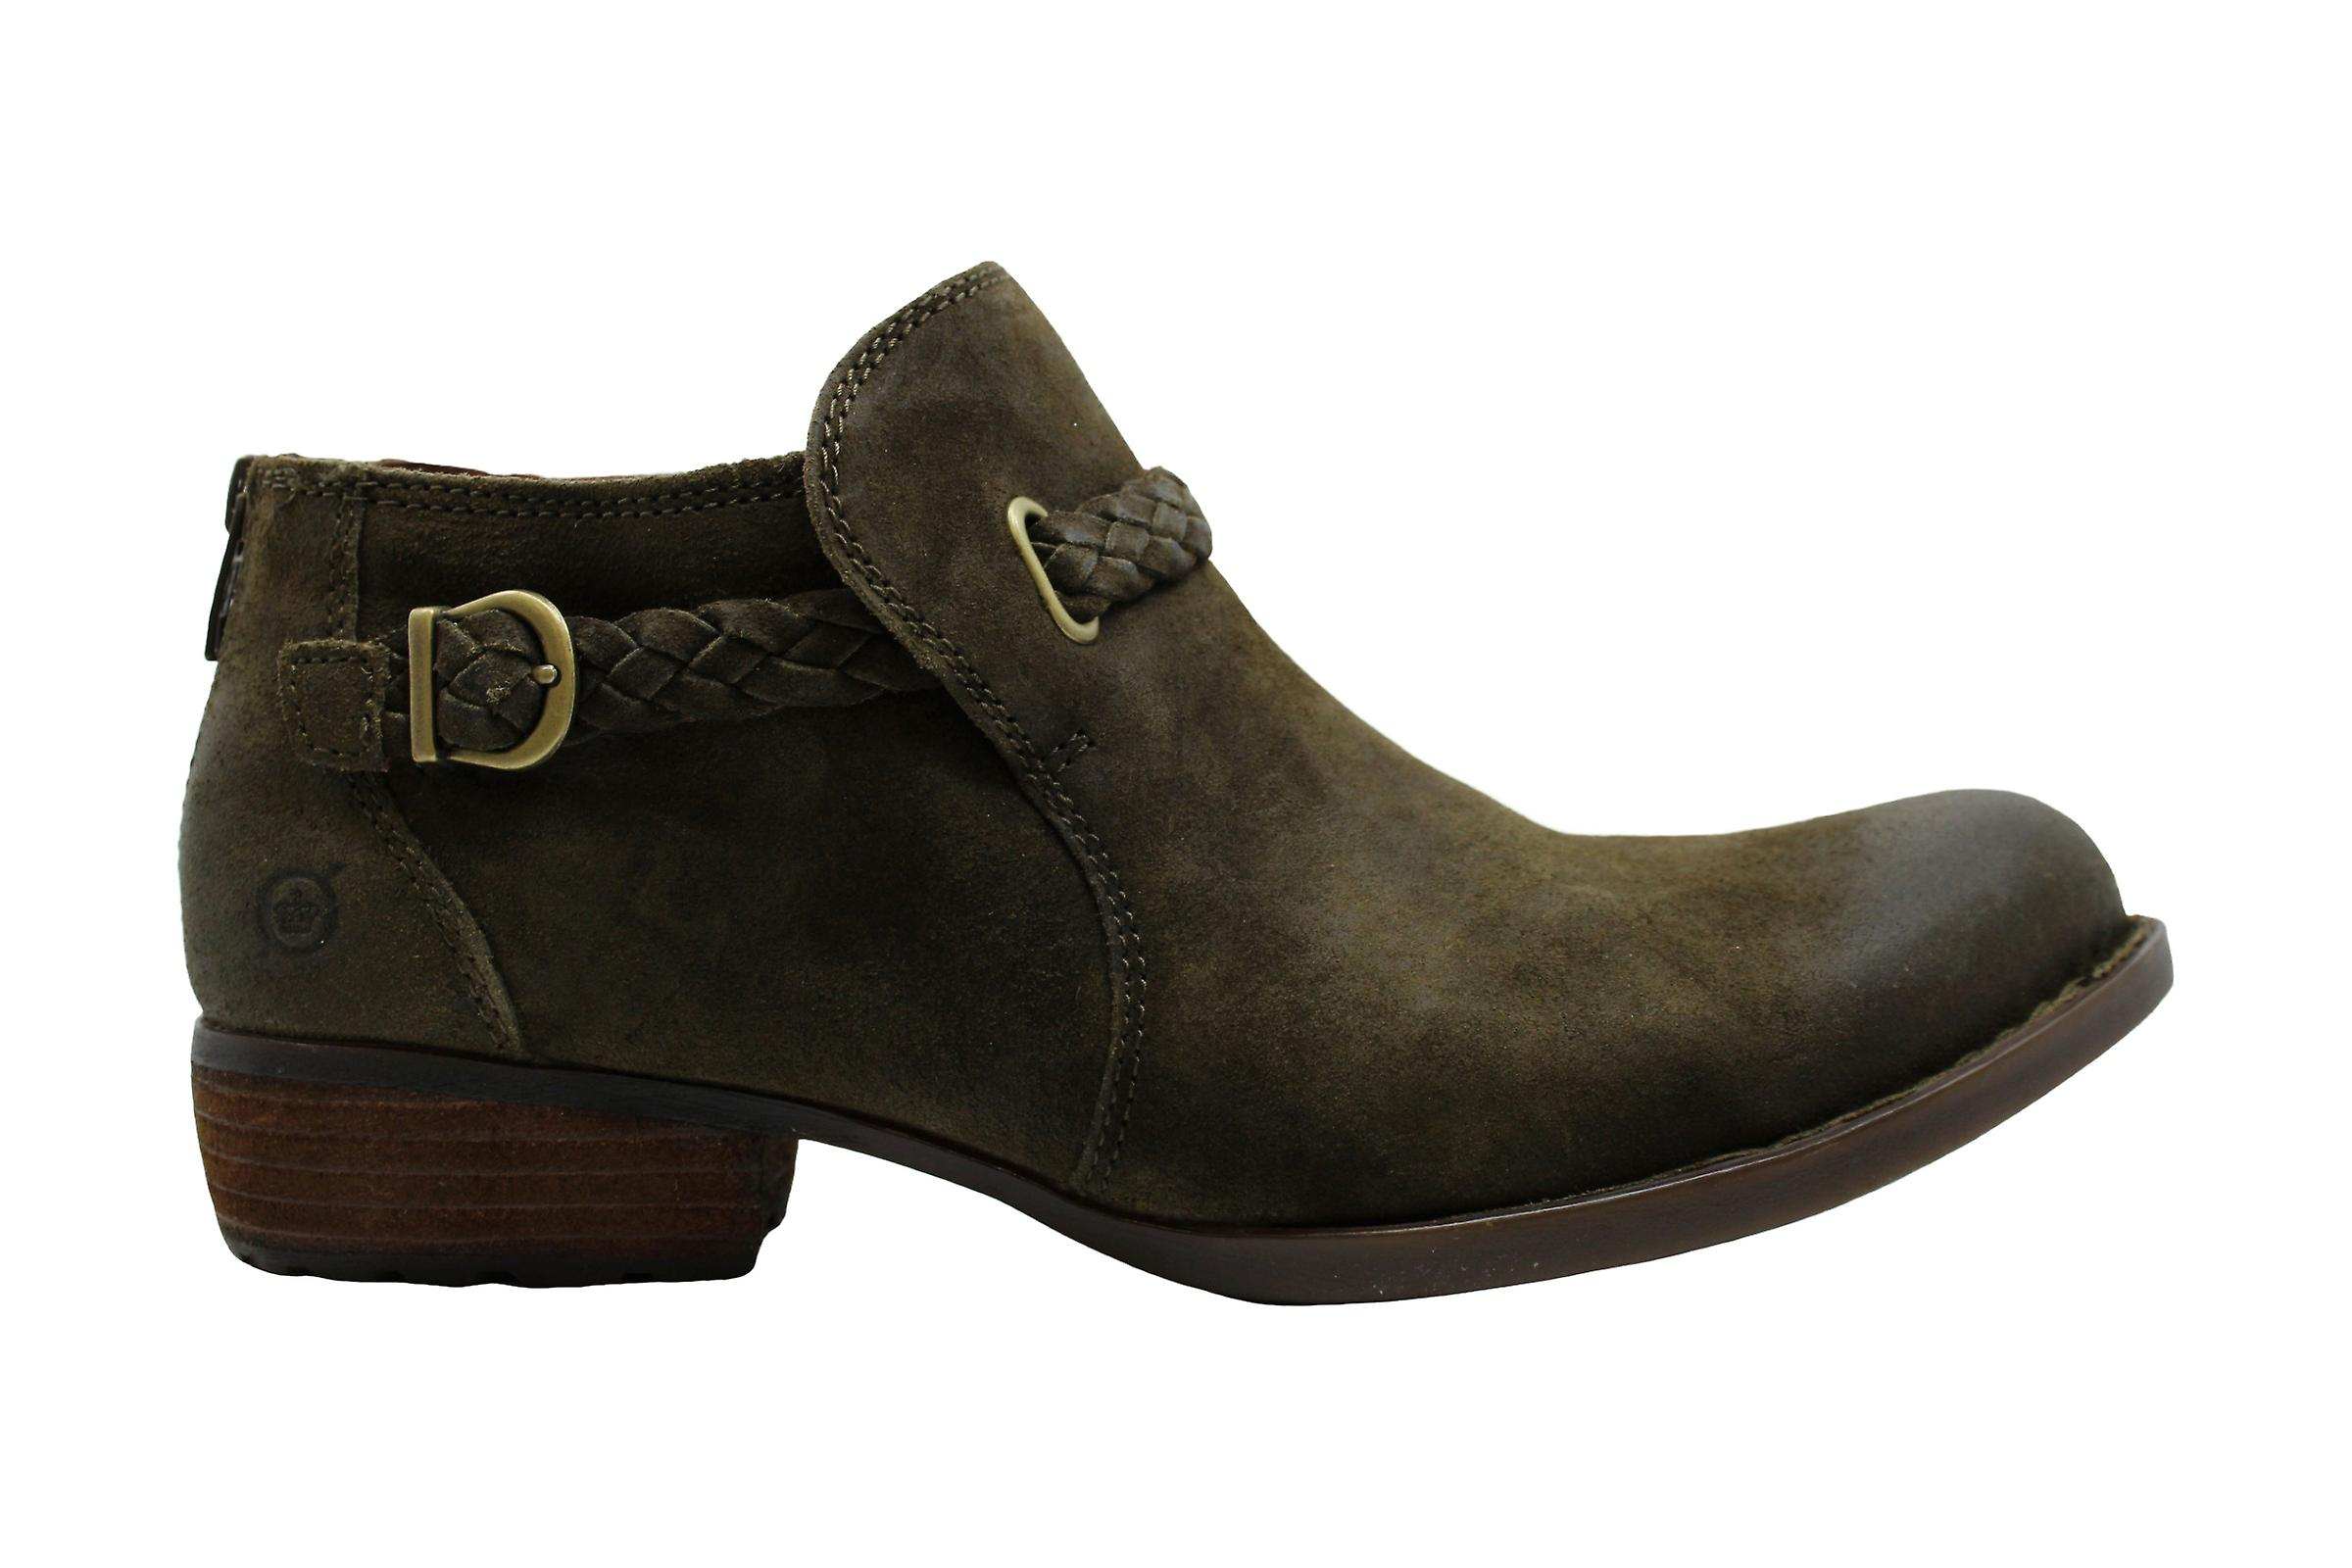 B.O.C Womens Sylvia Leather Almond Toe Ankle Fashion Boots Ip7cP